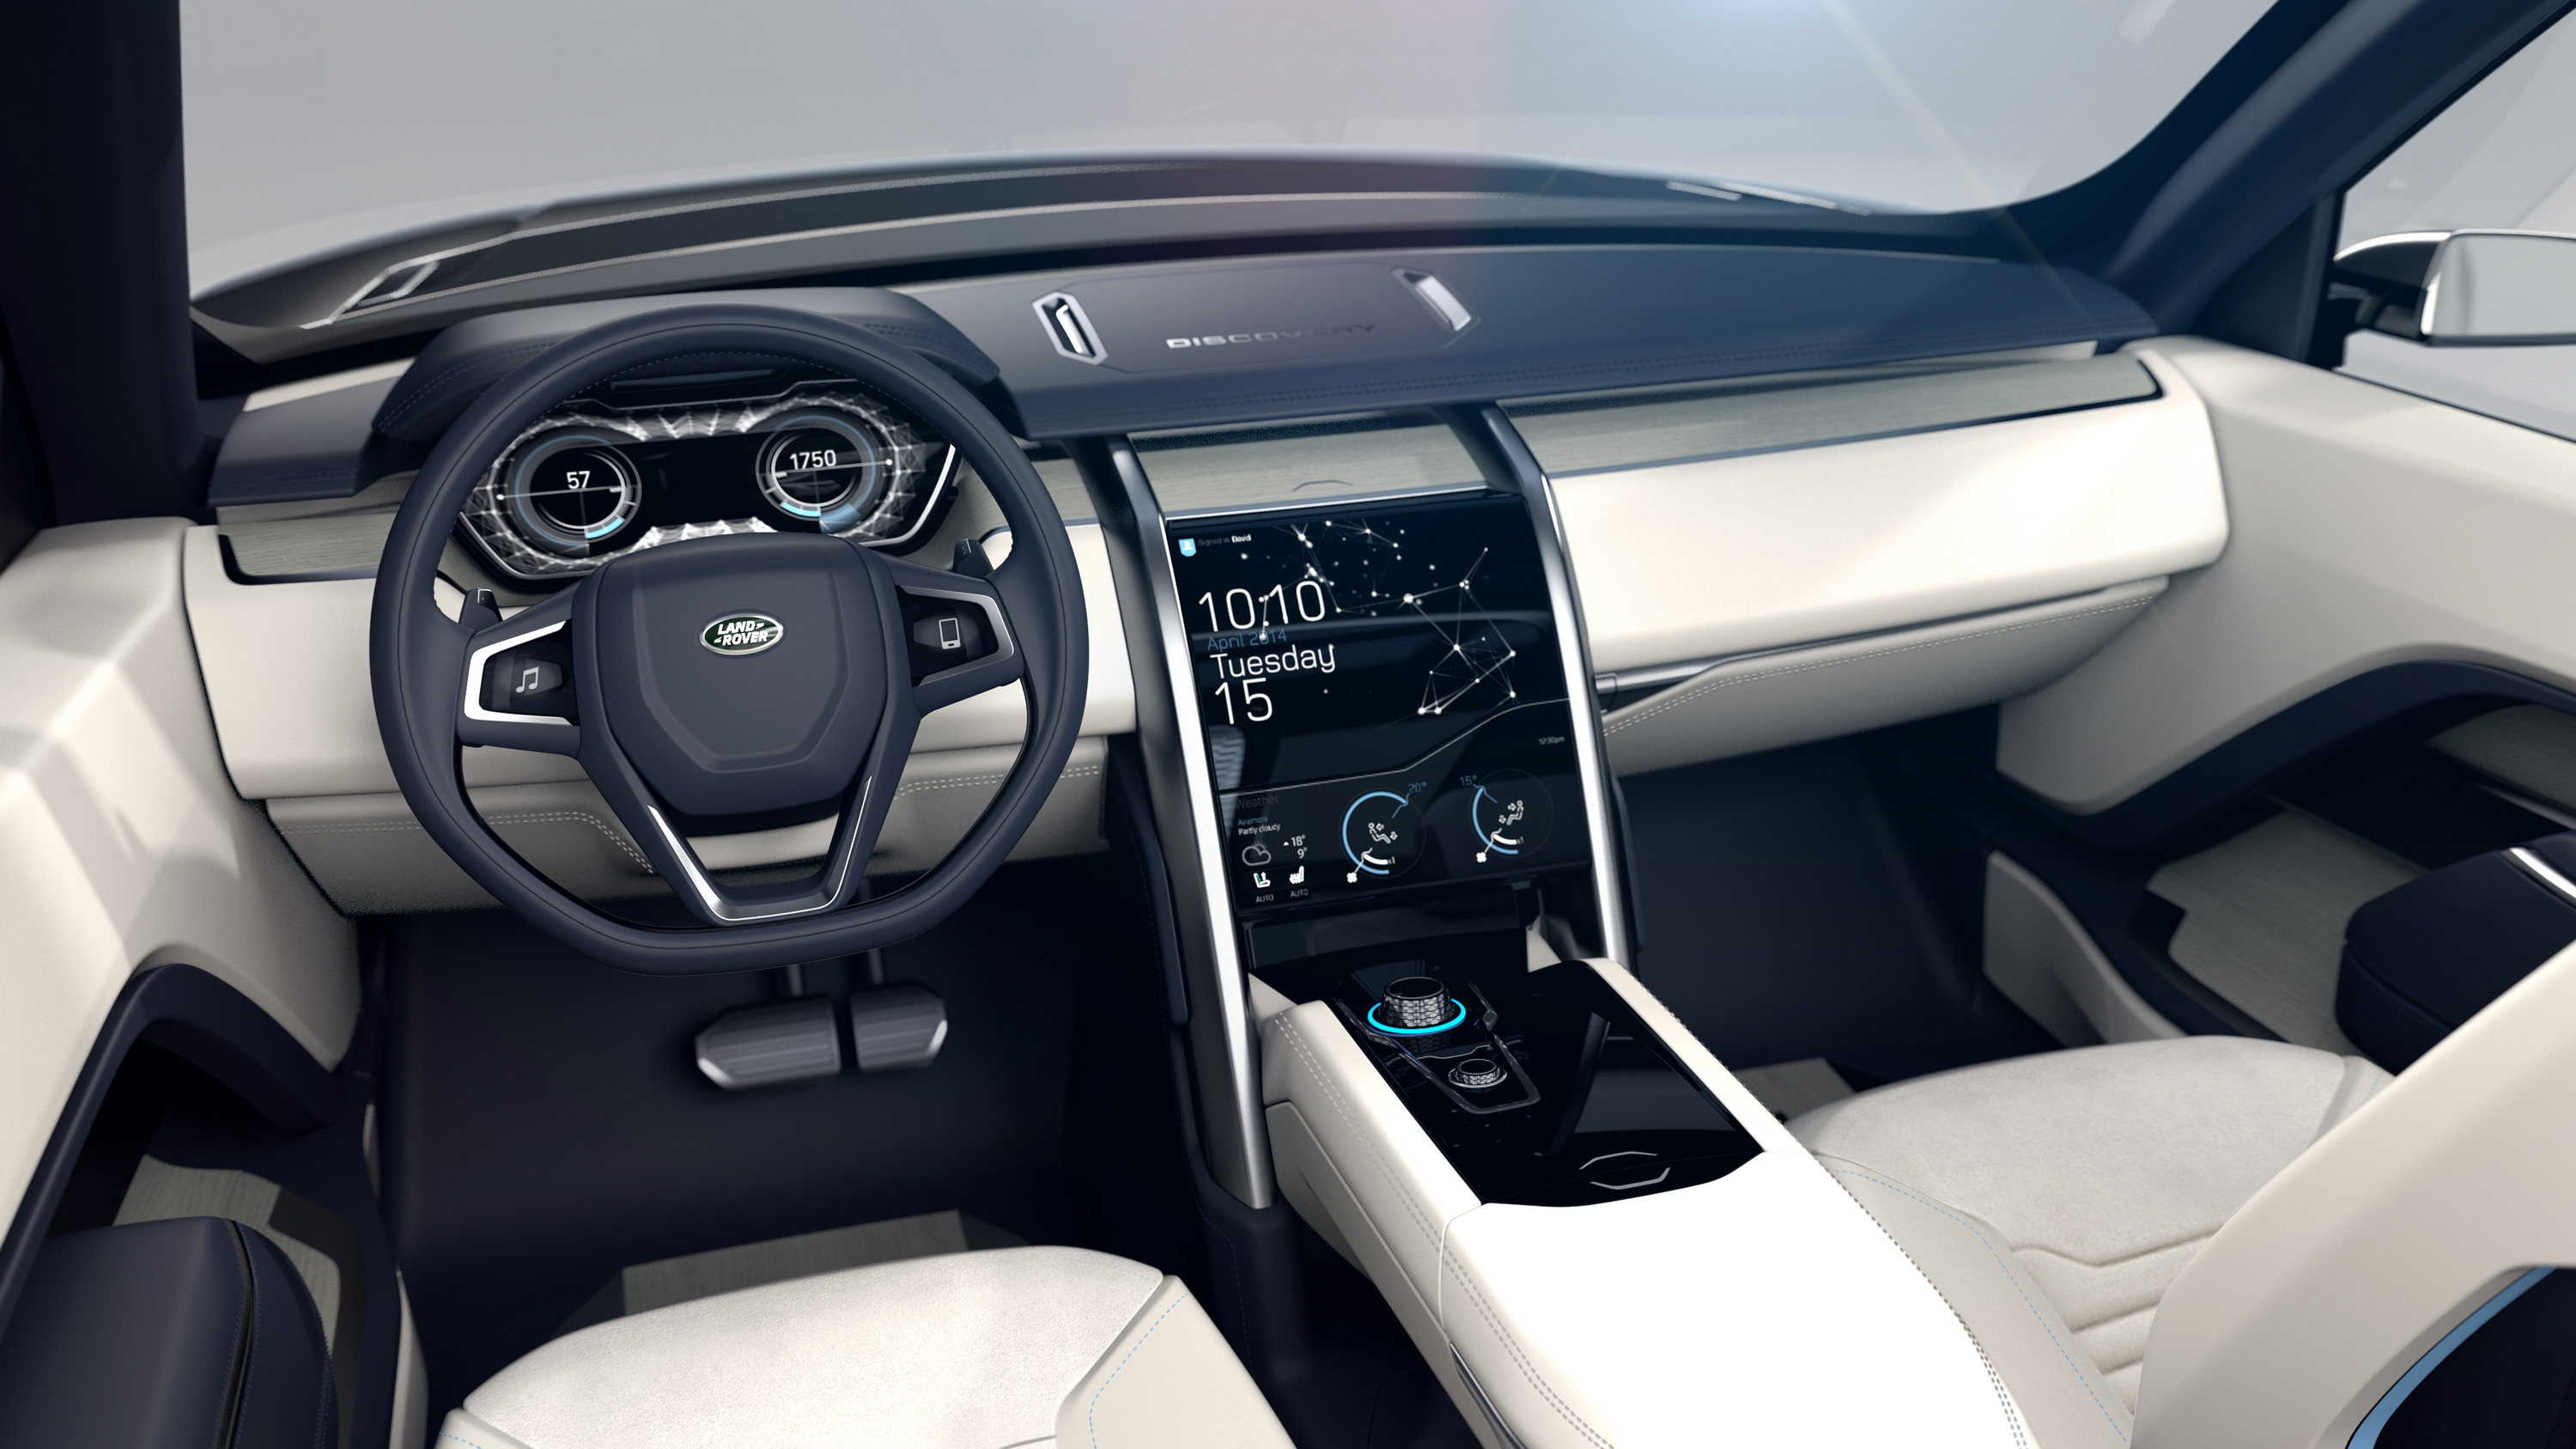 https://pictures.topspeed.com/IMG/jpg/201404/2014-land-rover-discovery-16.jpg